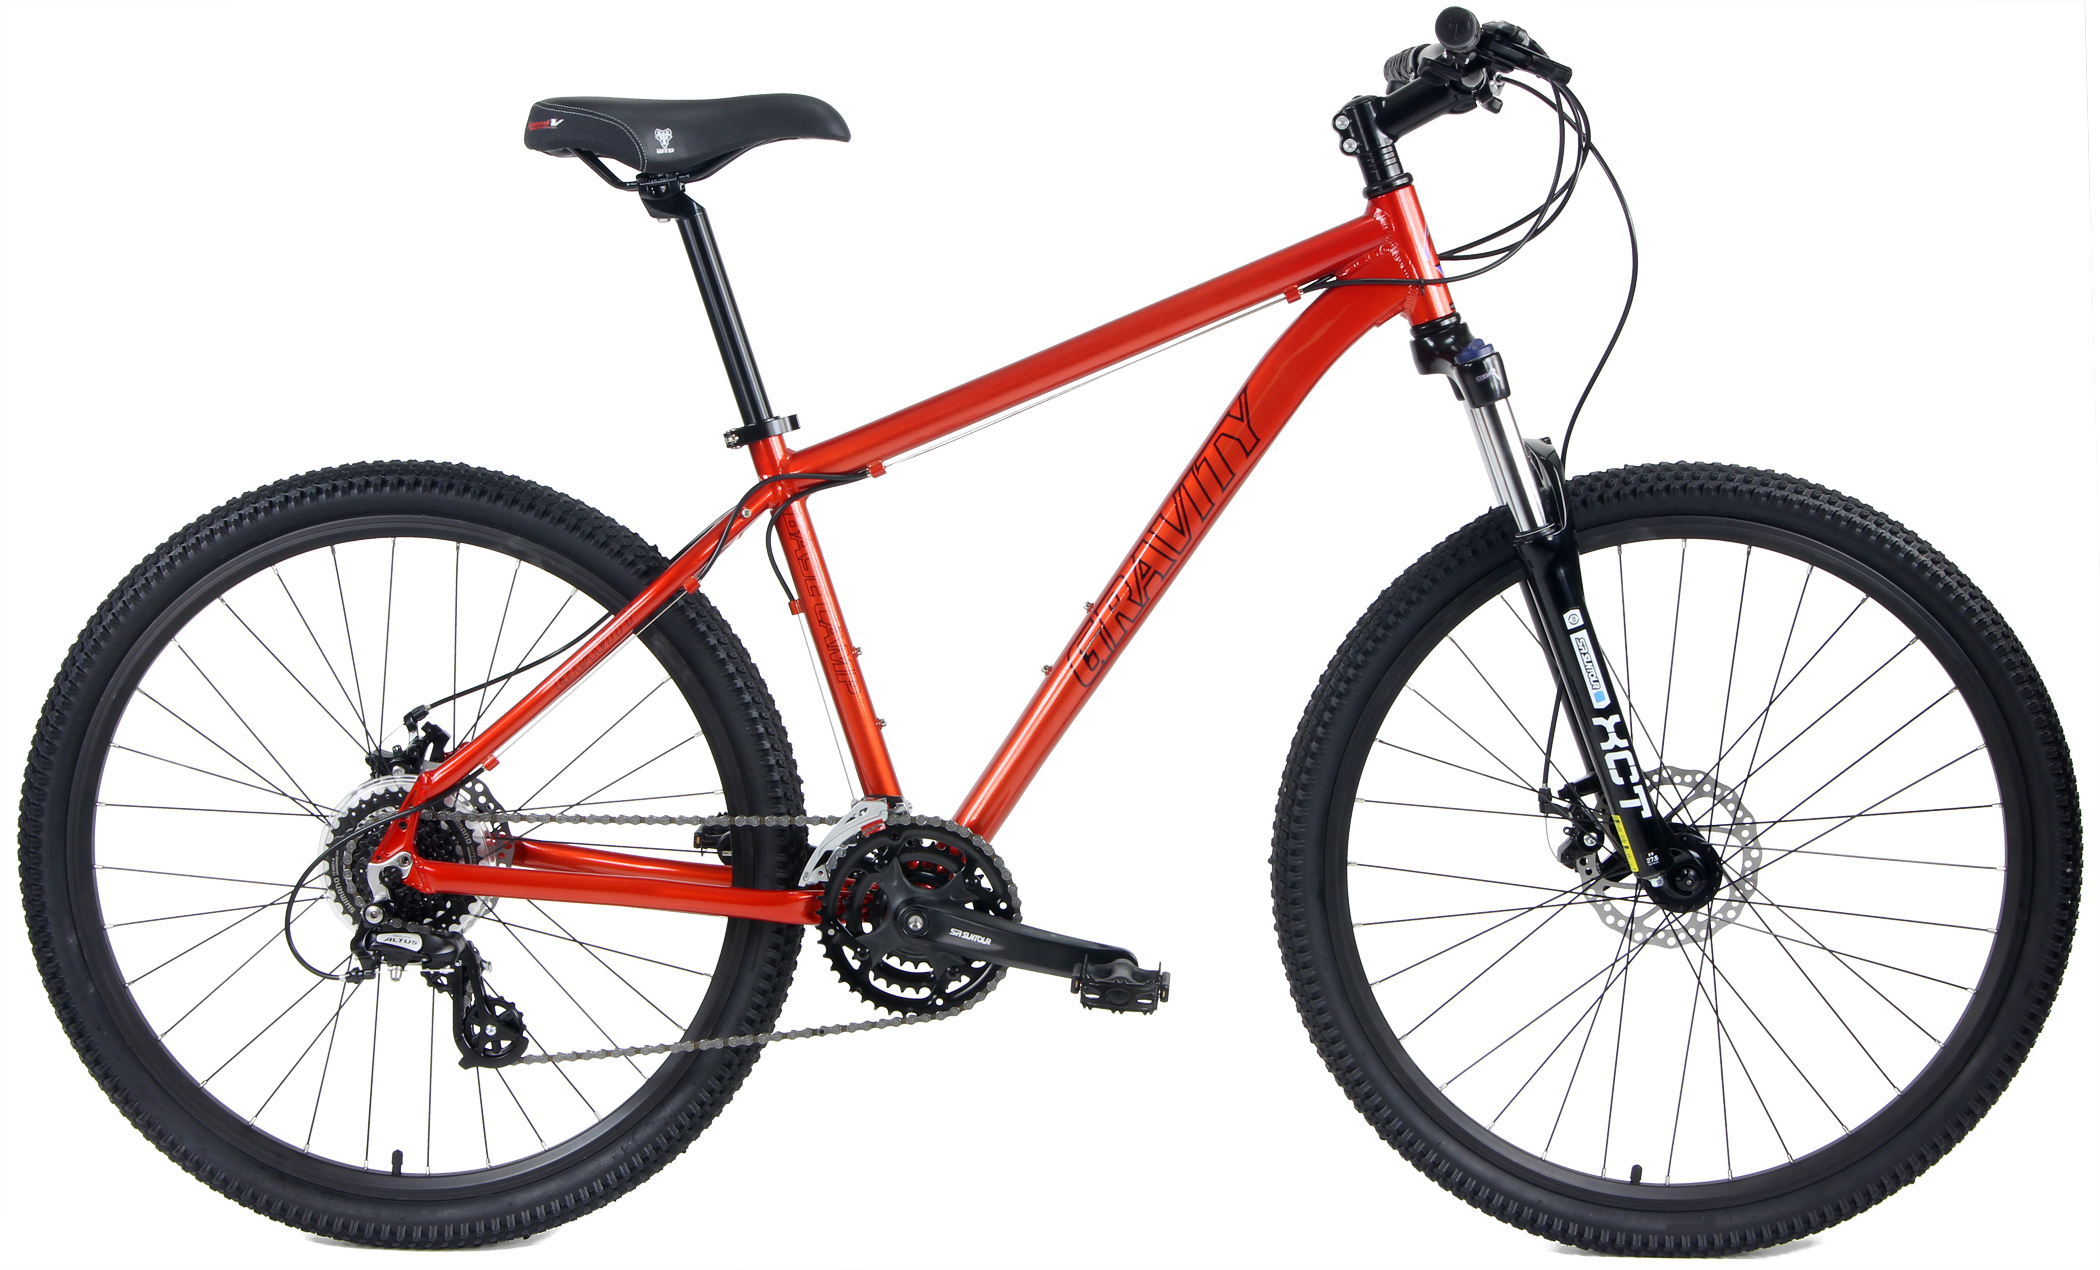 BASECAMP 27.5 - ATB w/ DISC BRAKES & 27.5 WHEELS